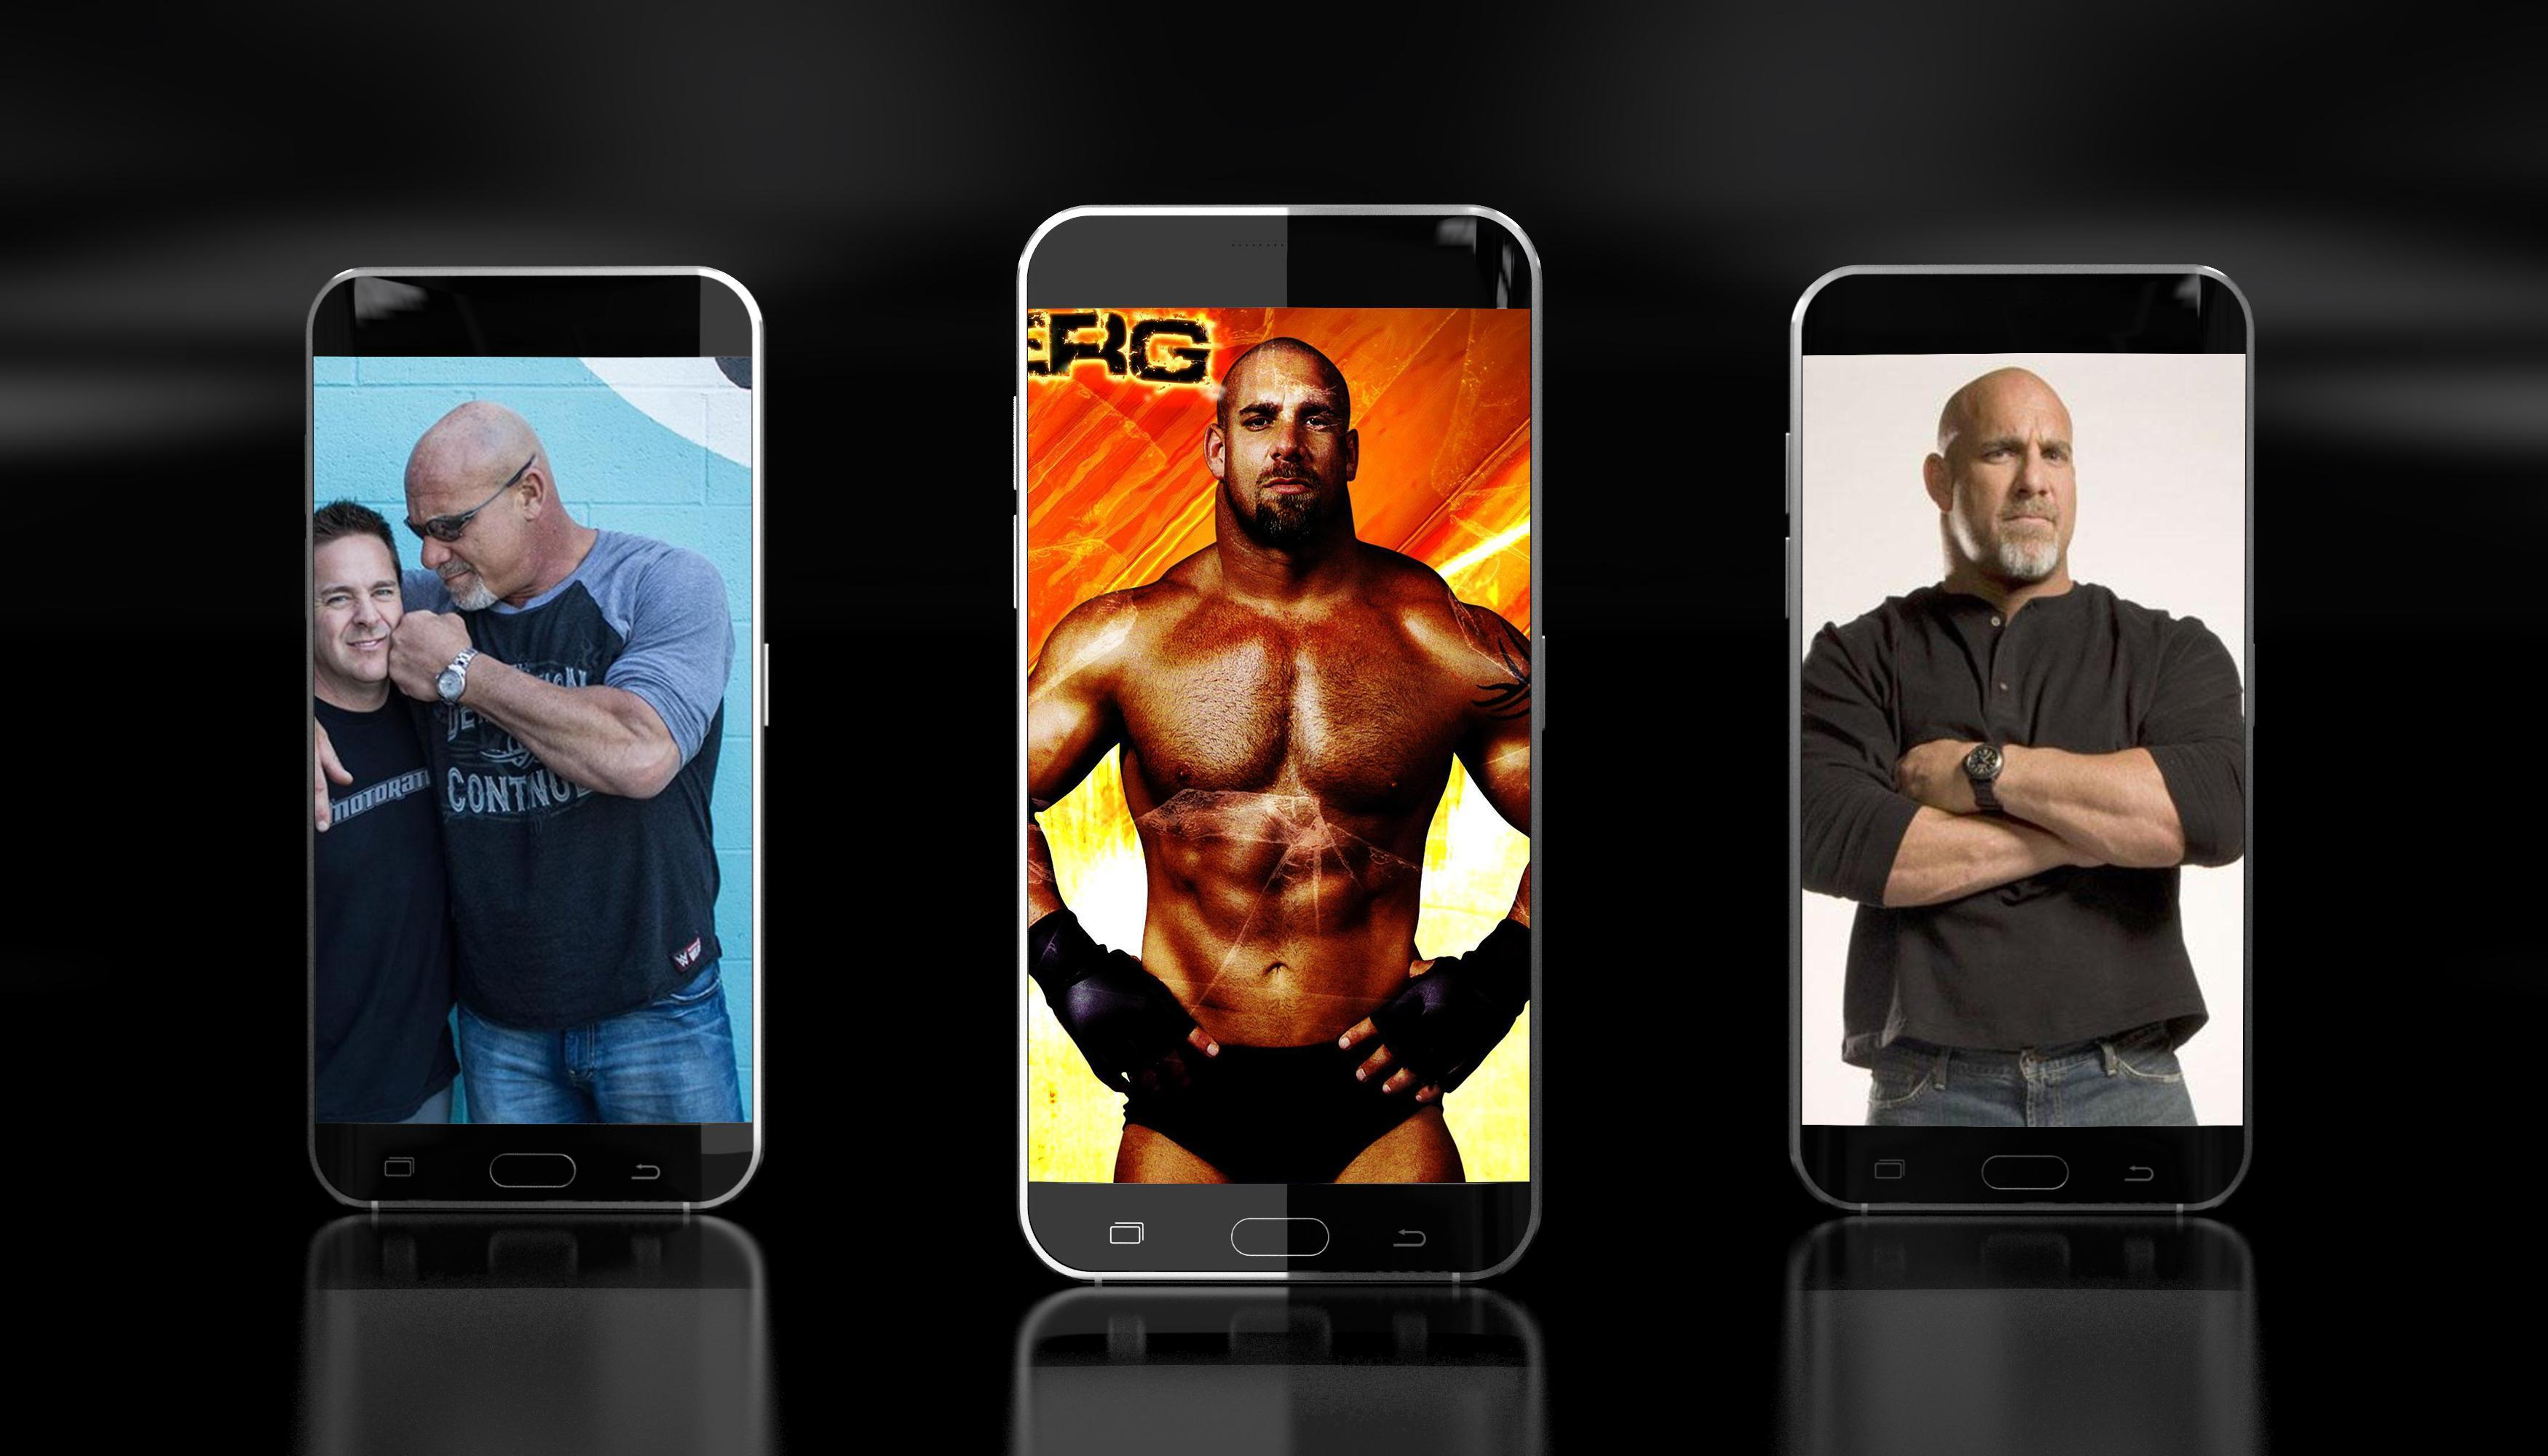 Bill Goldberg Wallpapers & pictures for Android - APK Download